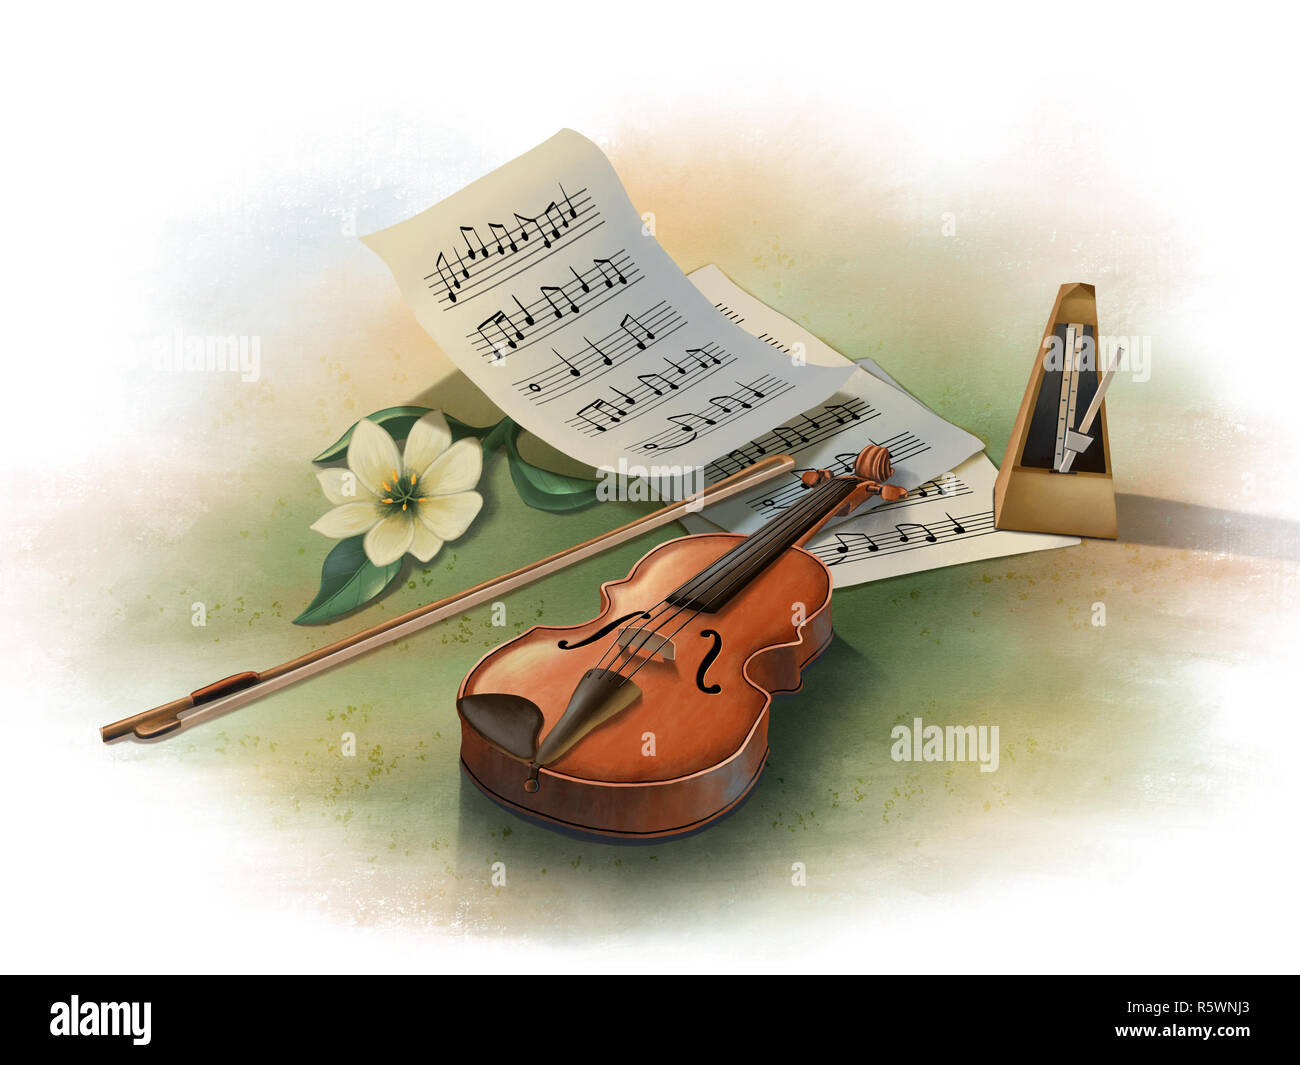 Still life with violin, metronome and some music sheets. Digital illustration. - Stock Image